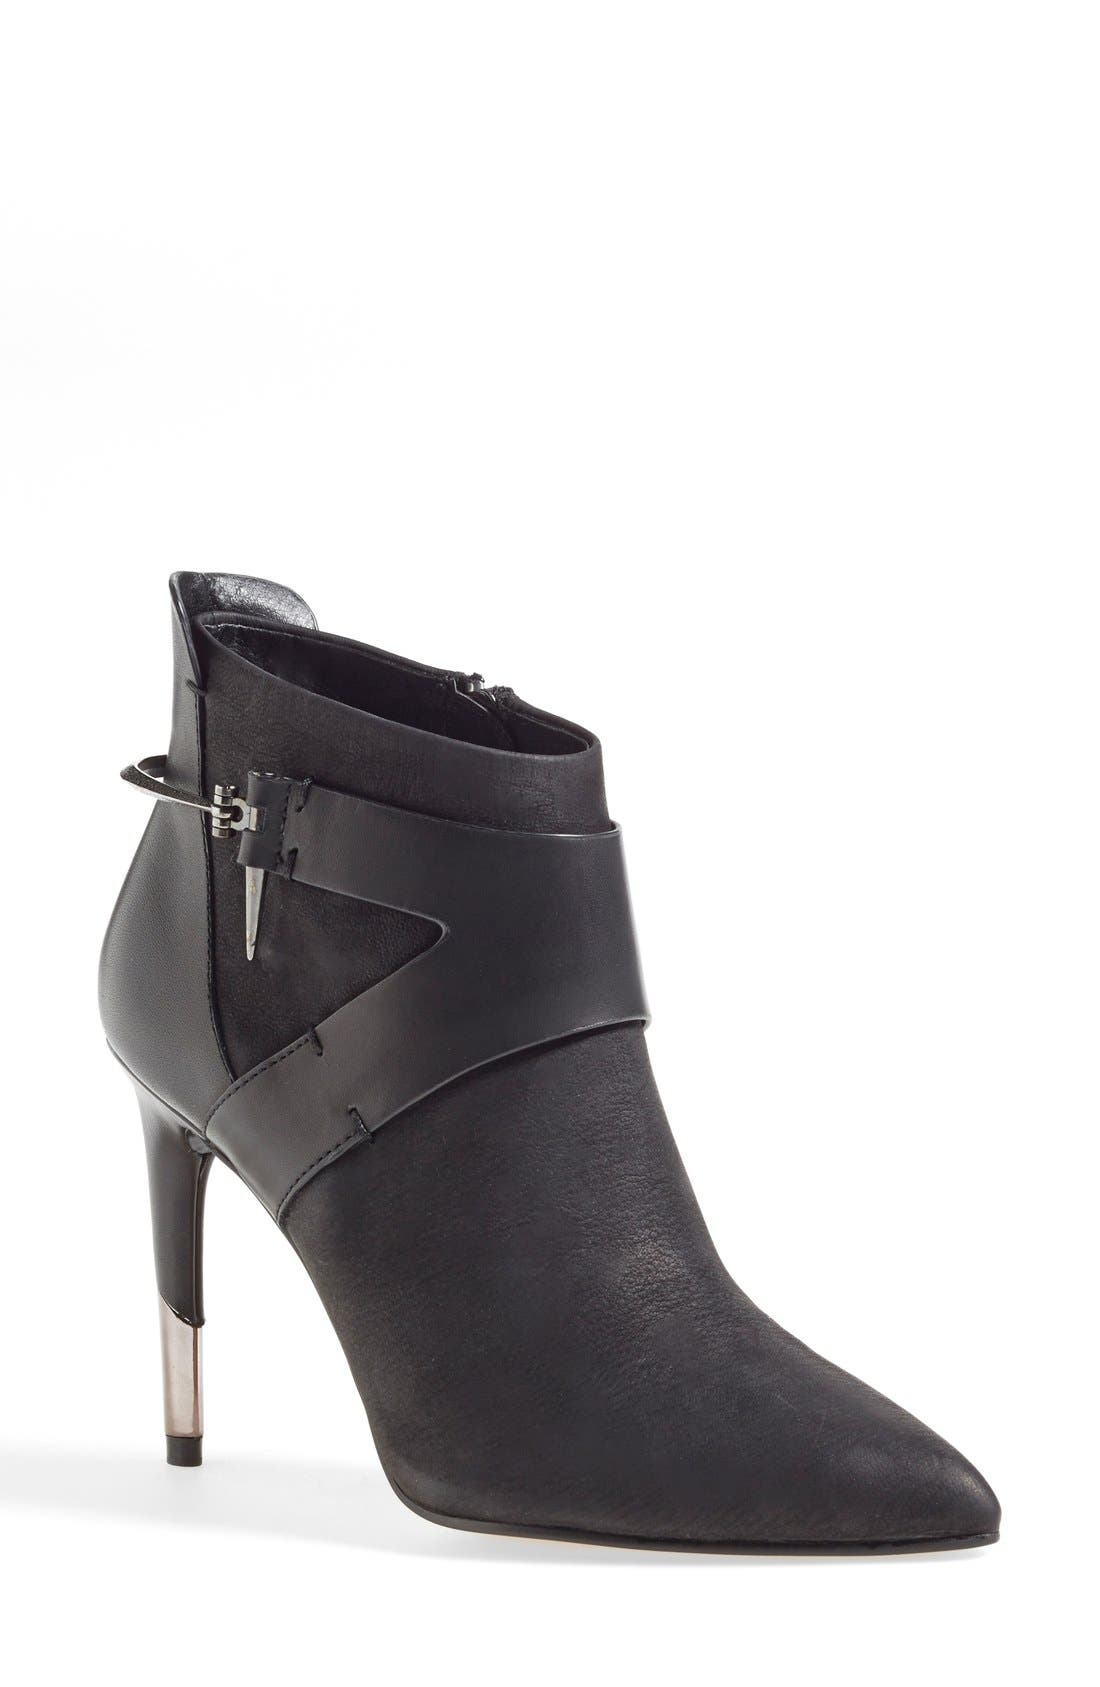 Alternate Image 1 Selected - Dolce Vita 'Isleen' Pointy Toe Bootie (Women)